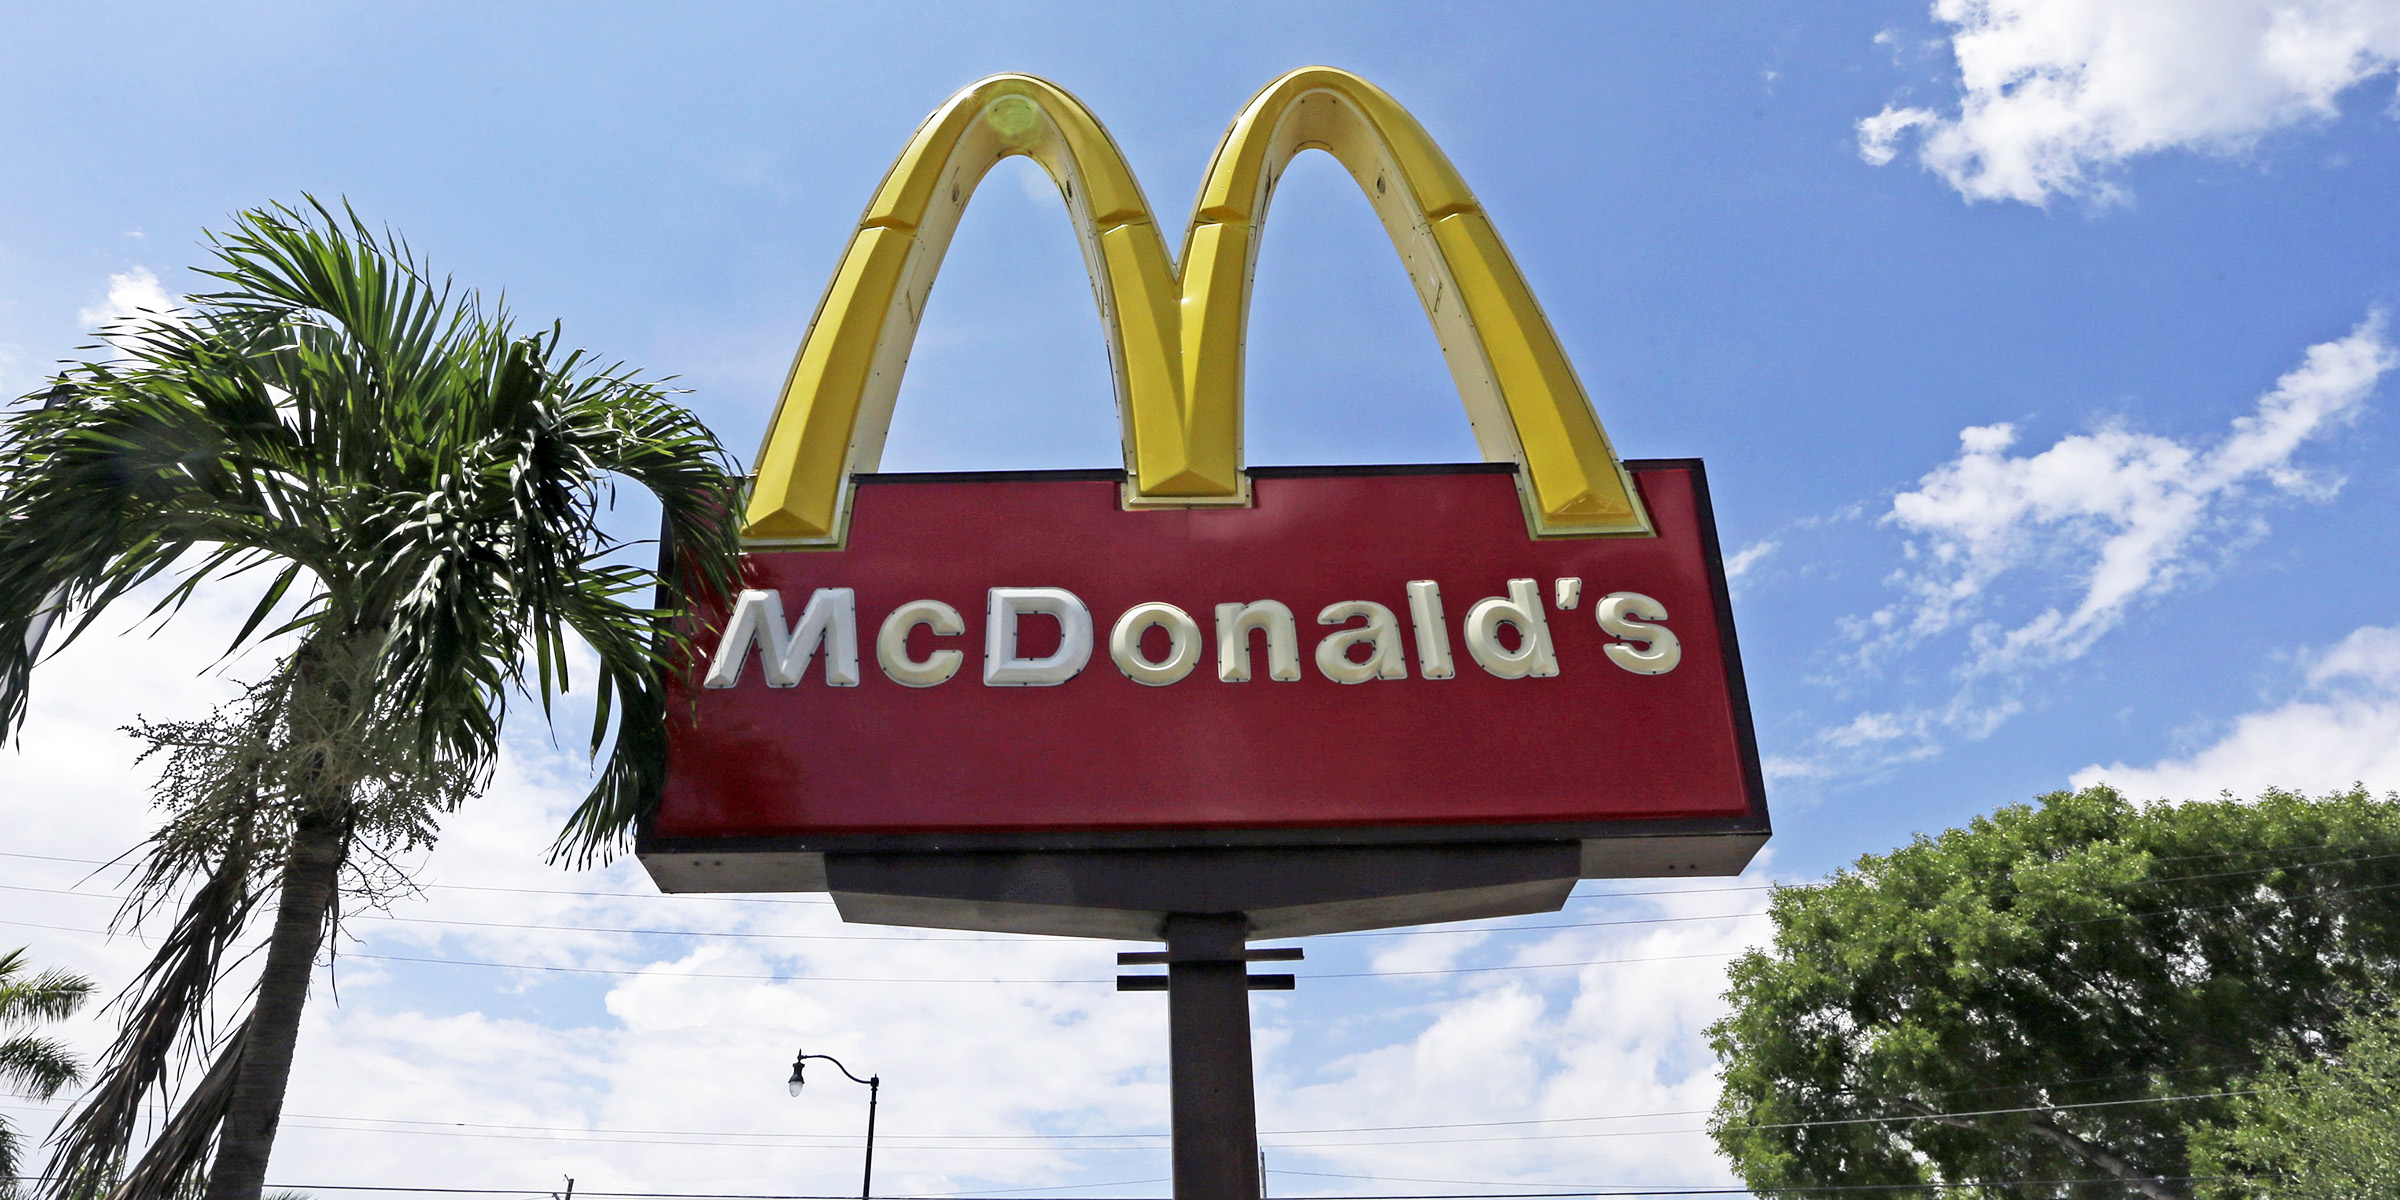 McDonald's to get rid of Signature Craft burgers and sandwiches